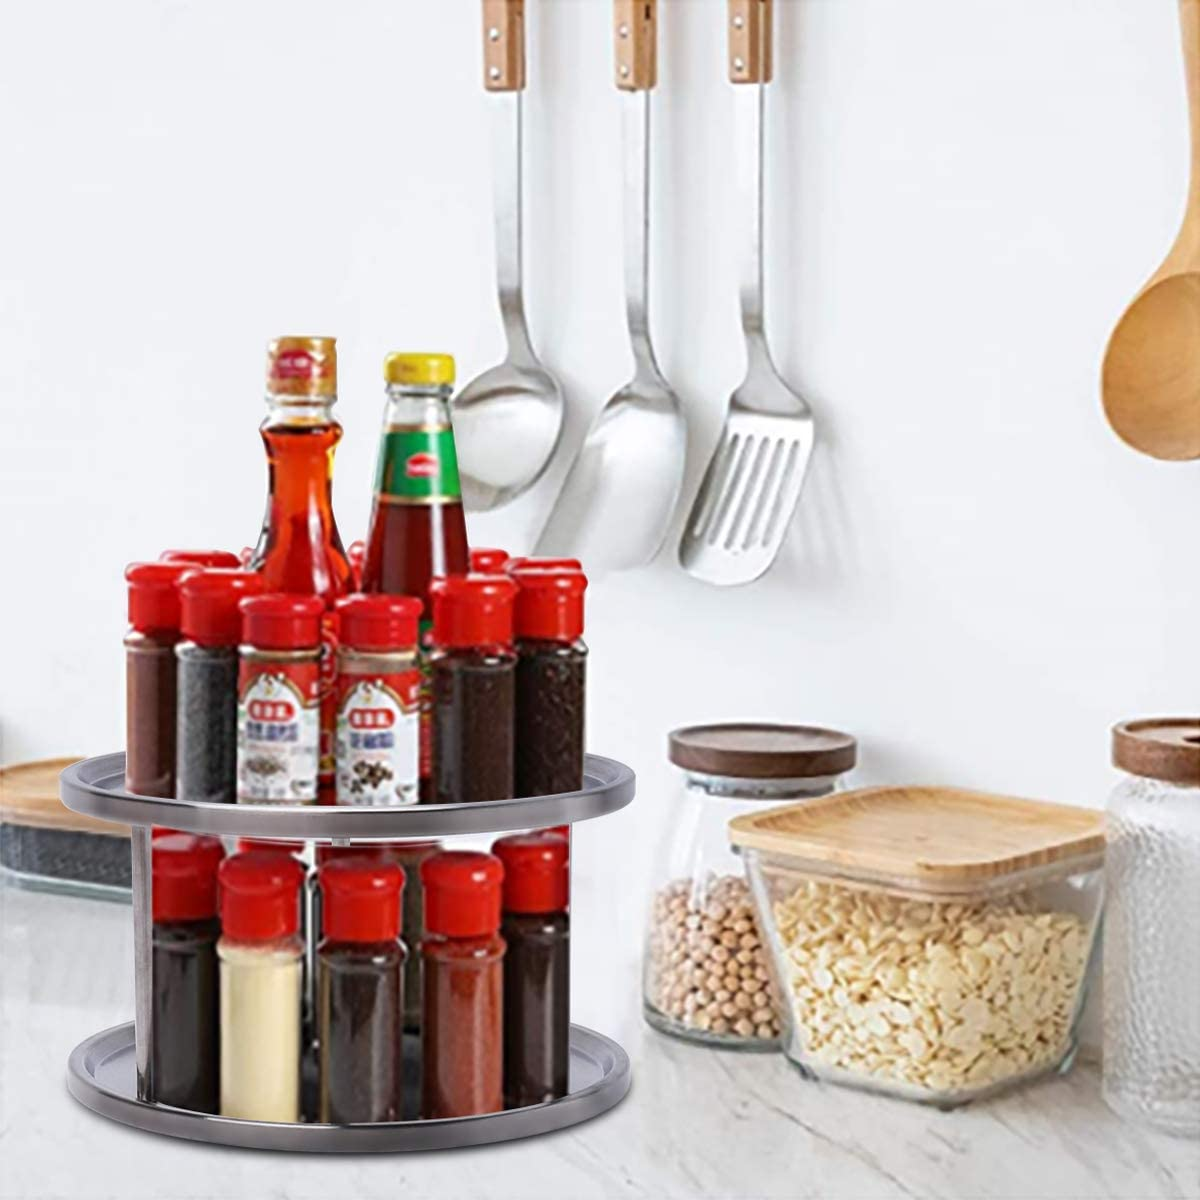 10 Inch 2-Tier 360-degree Rotating Lazy Susan Cupboard Organizer Lazy Susan Turntable Stainless Steel Spice Rack